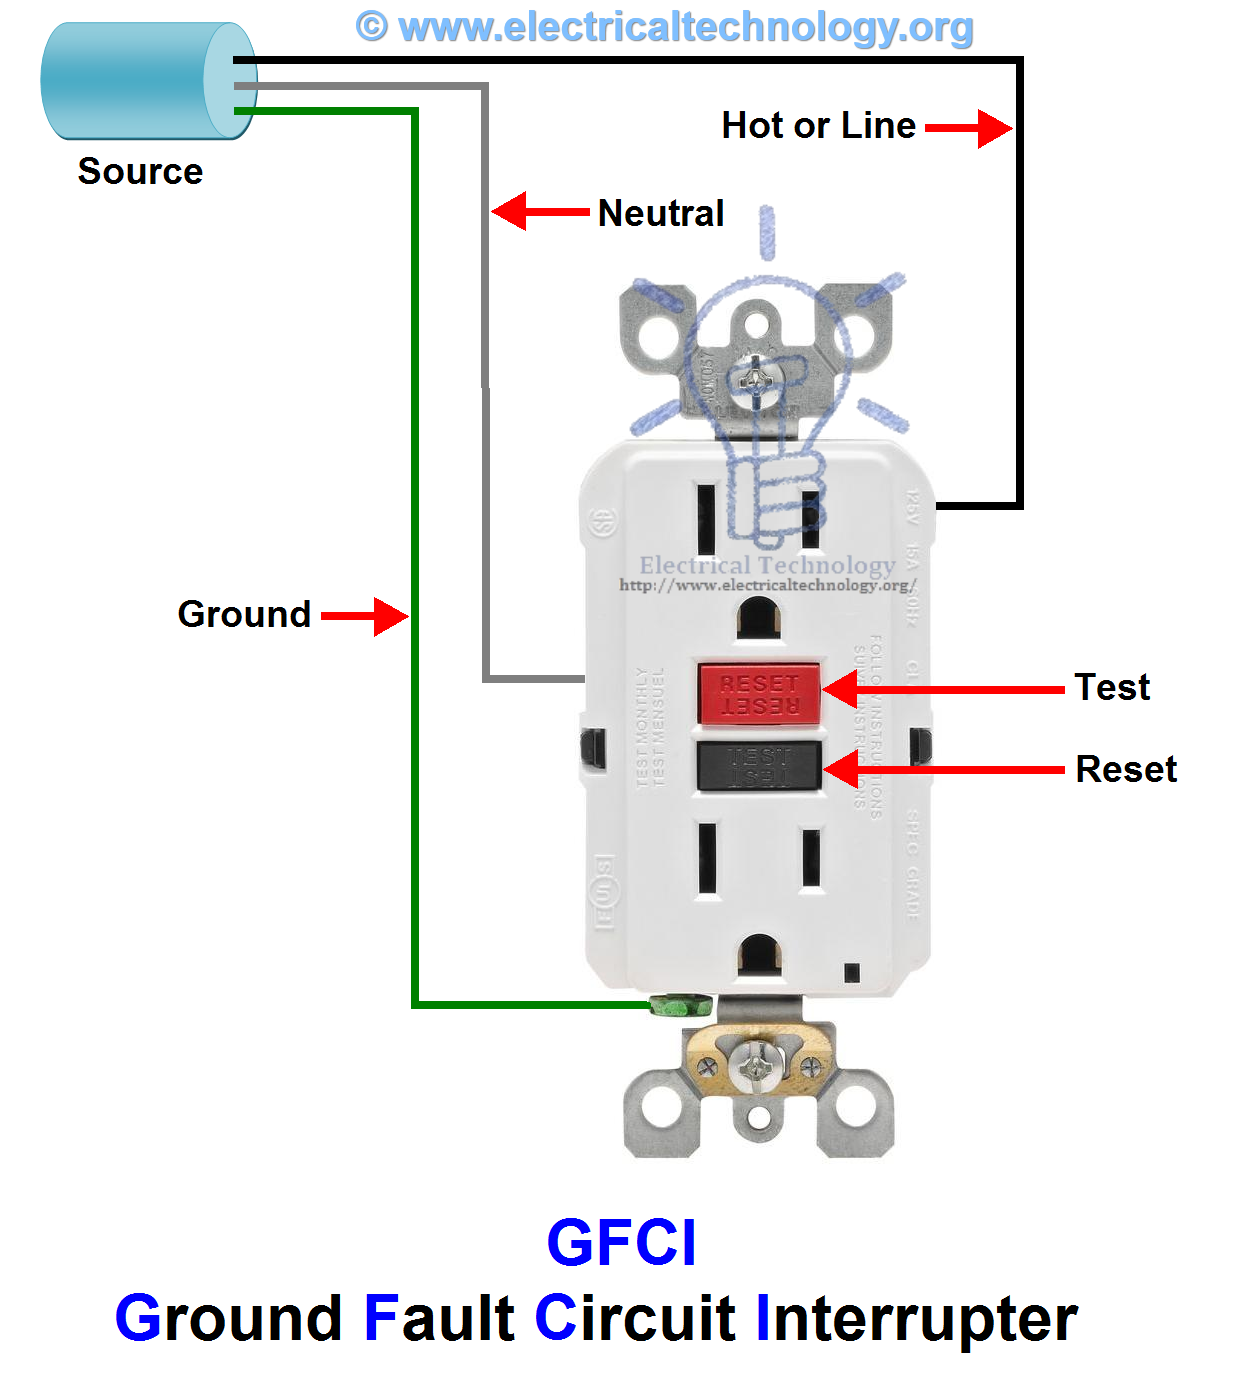 gfci ground fault circuit interrupter types working rh pinterest com ground fault circuit interrupter gfci ground fault circuit interrupter problems